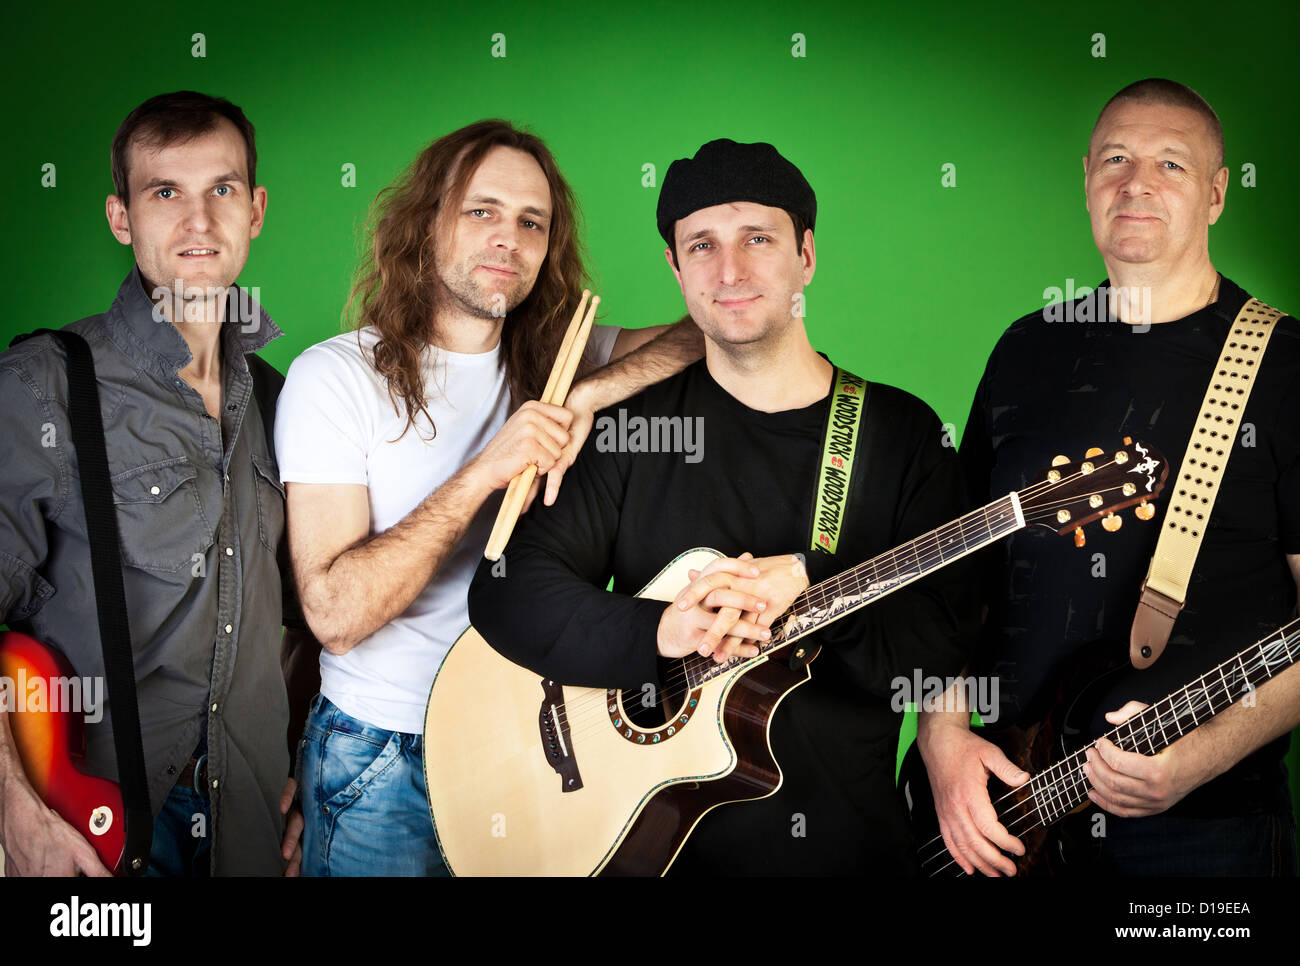 Musical group of artists on a green background - Stock Image